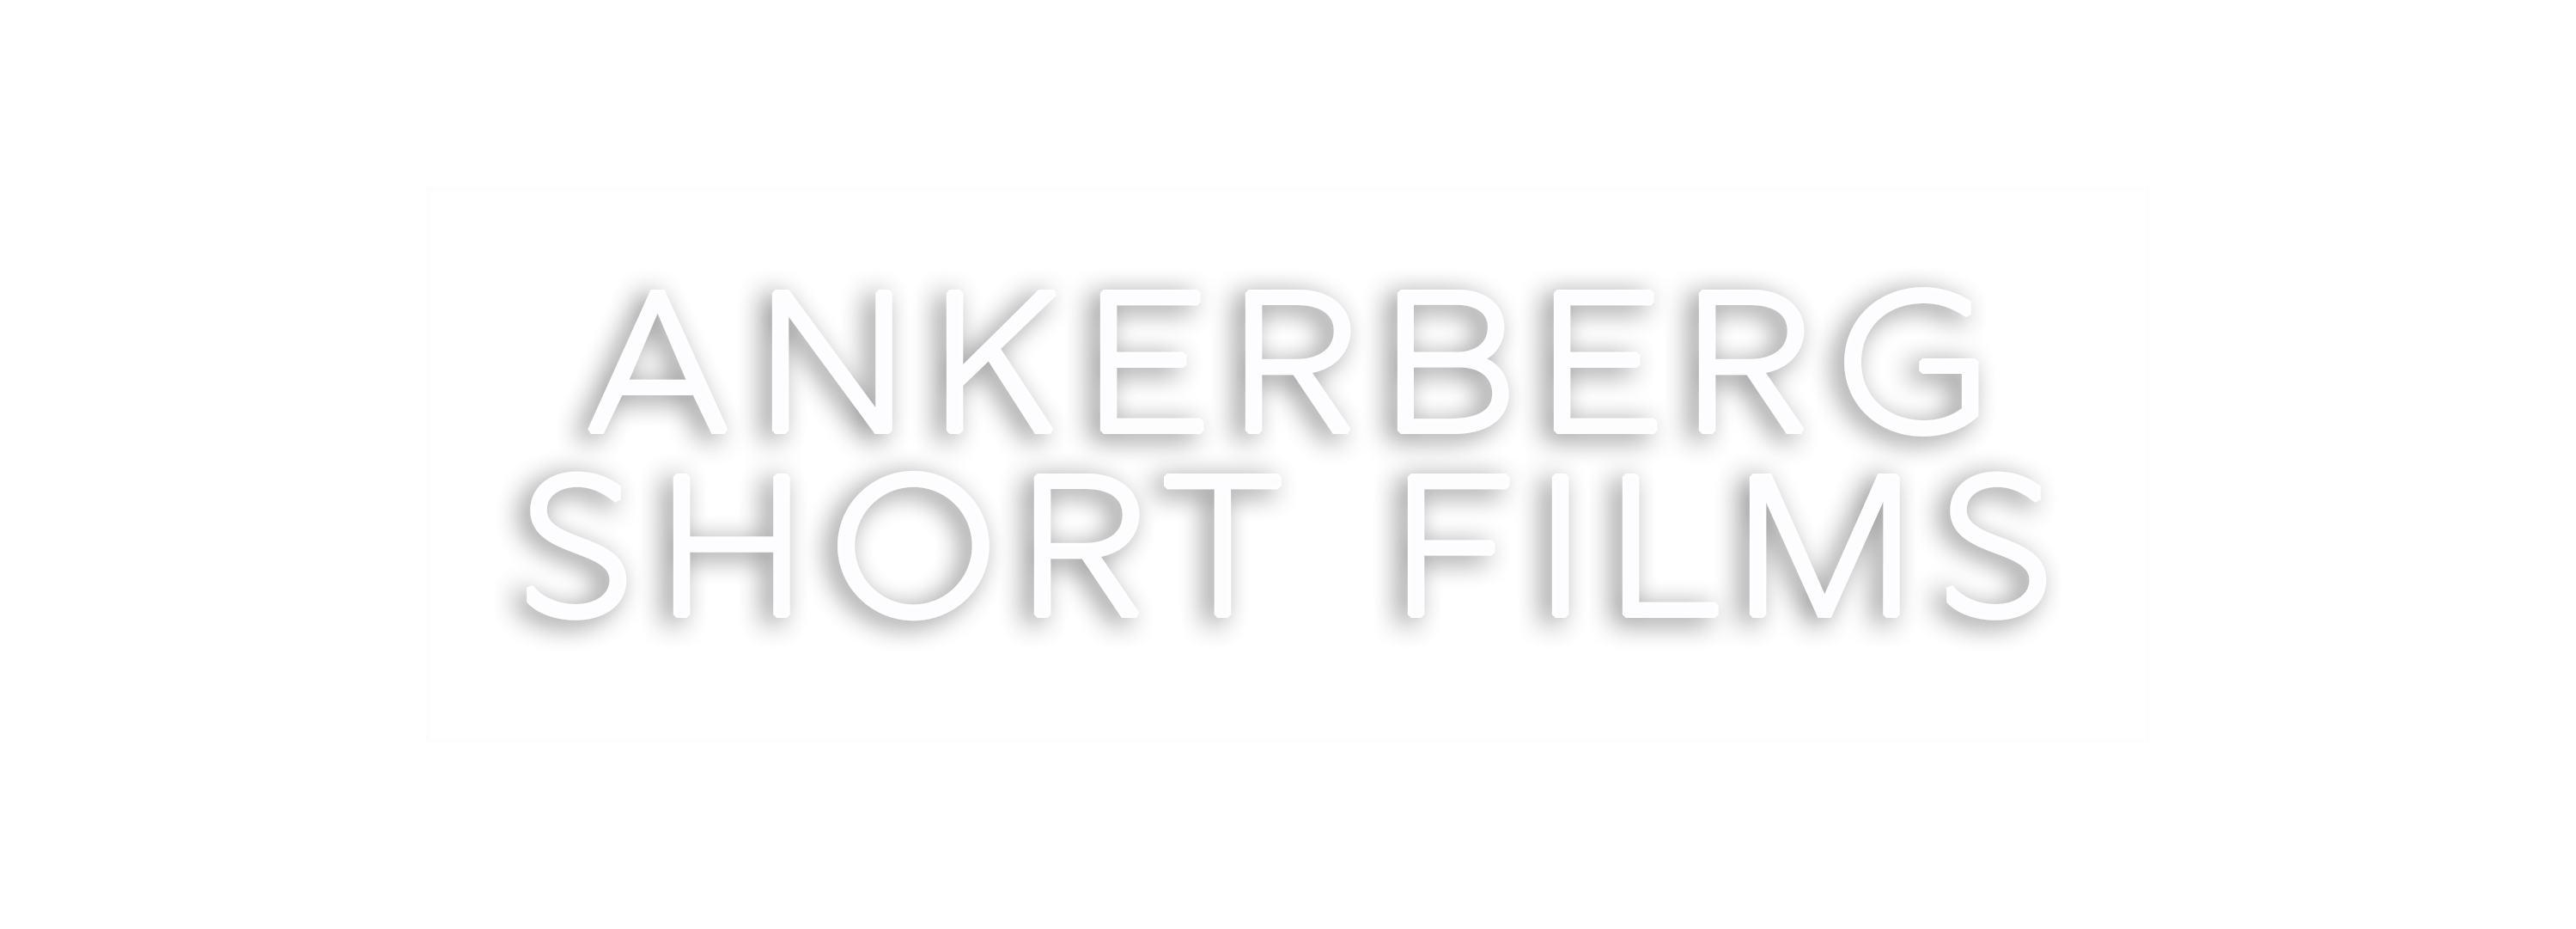 Ankerberg Short Films Transparent